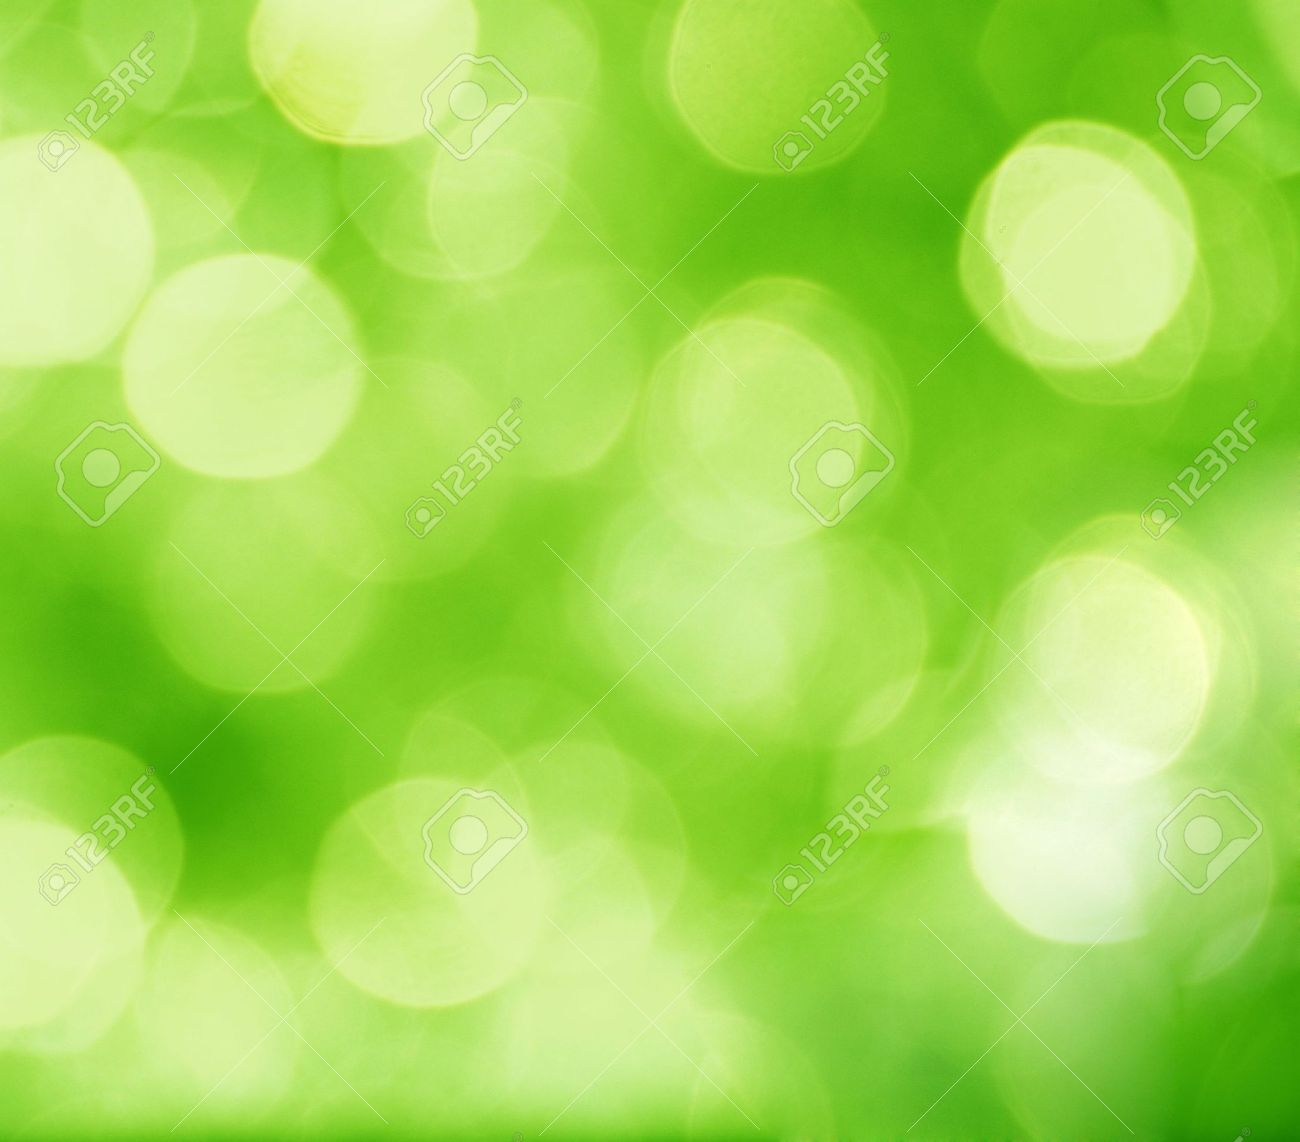 abstract green background with blurred circles Stock Photo - 6241892